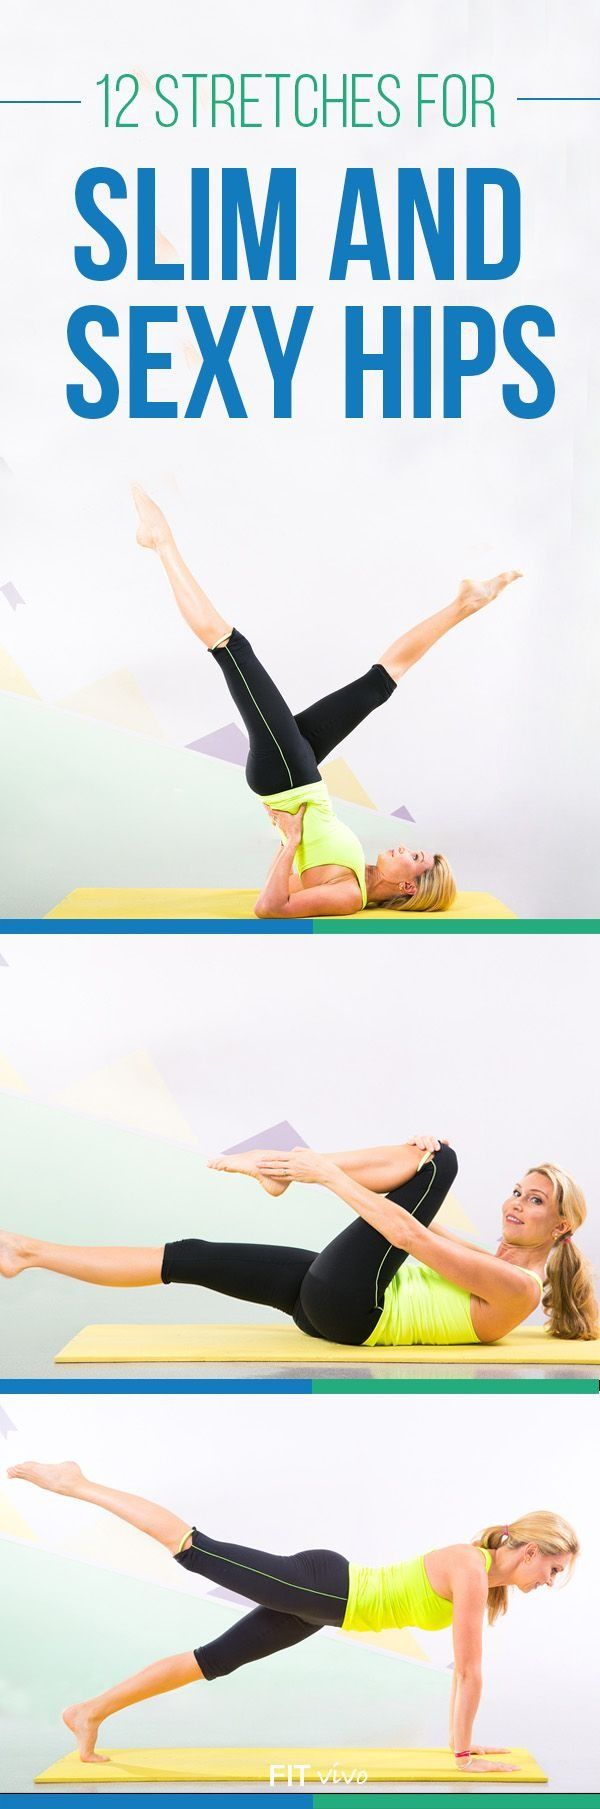 Work out routines. Want a good hip workout ? Here are 12 stretches and workouts for flexibility and strengthening of the hips. These exercises help loosen tight hip flexors and finally get those slim and sexy hips. Perfect for men and women. Also great for runners to recover after injury or strain.   Health.com